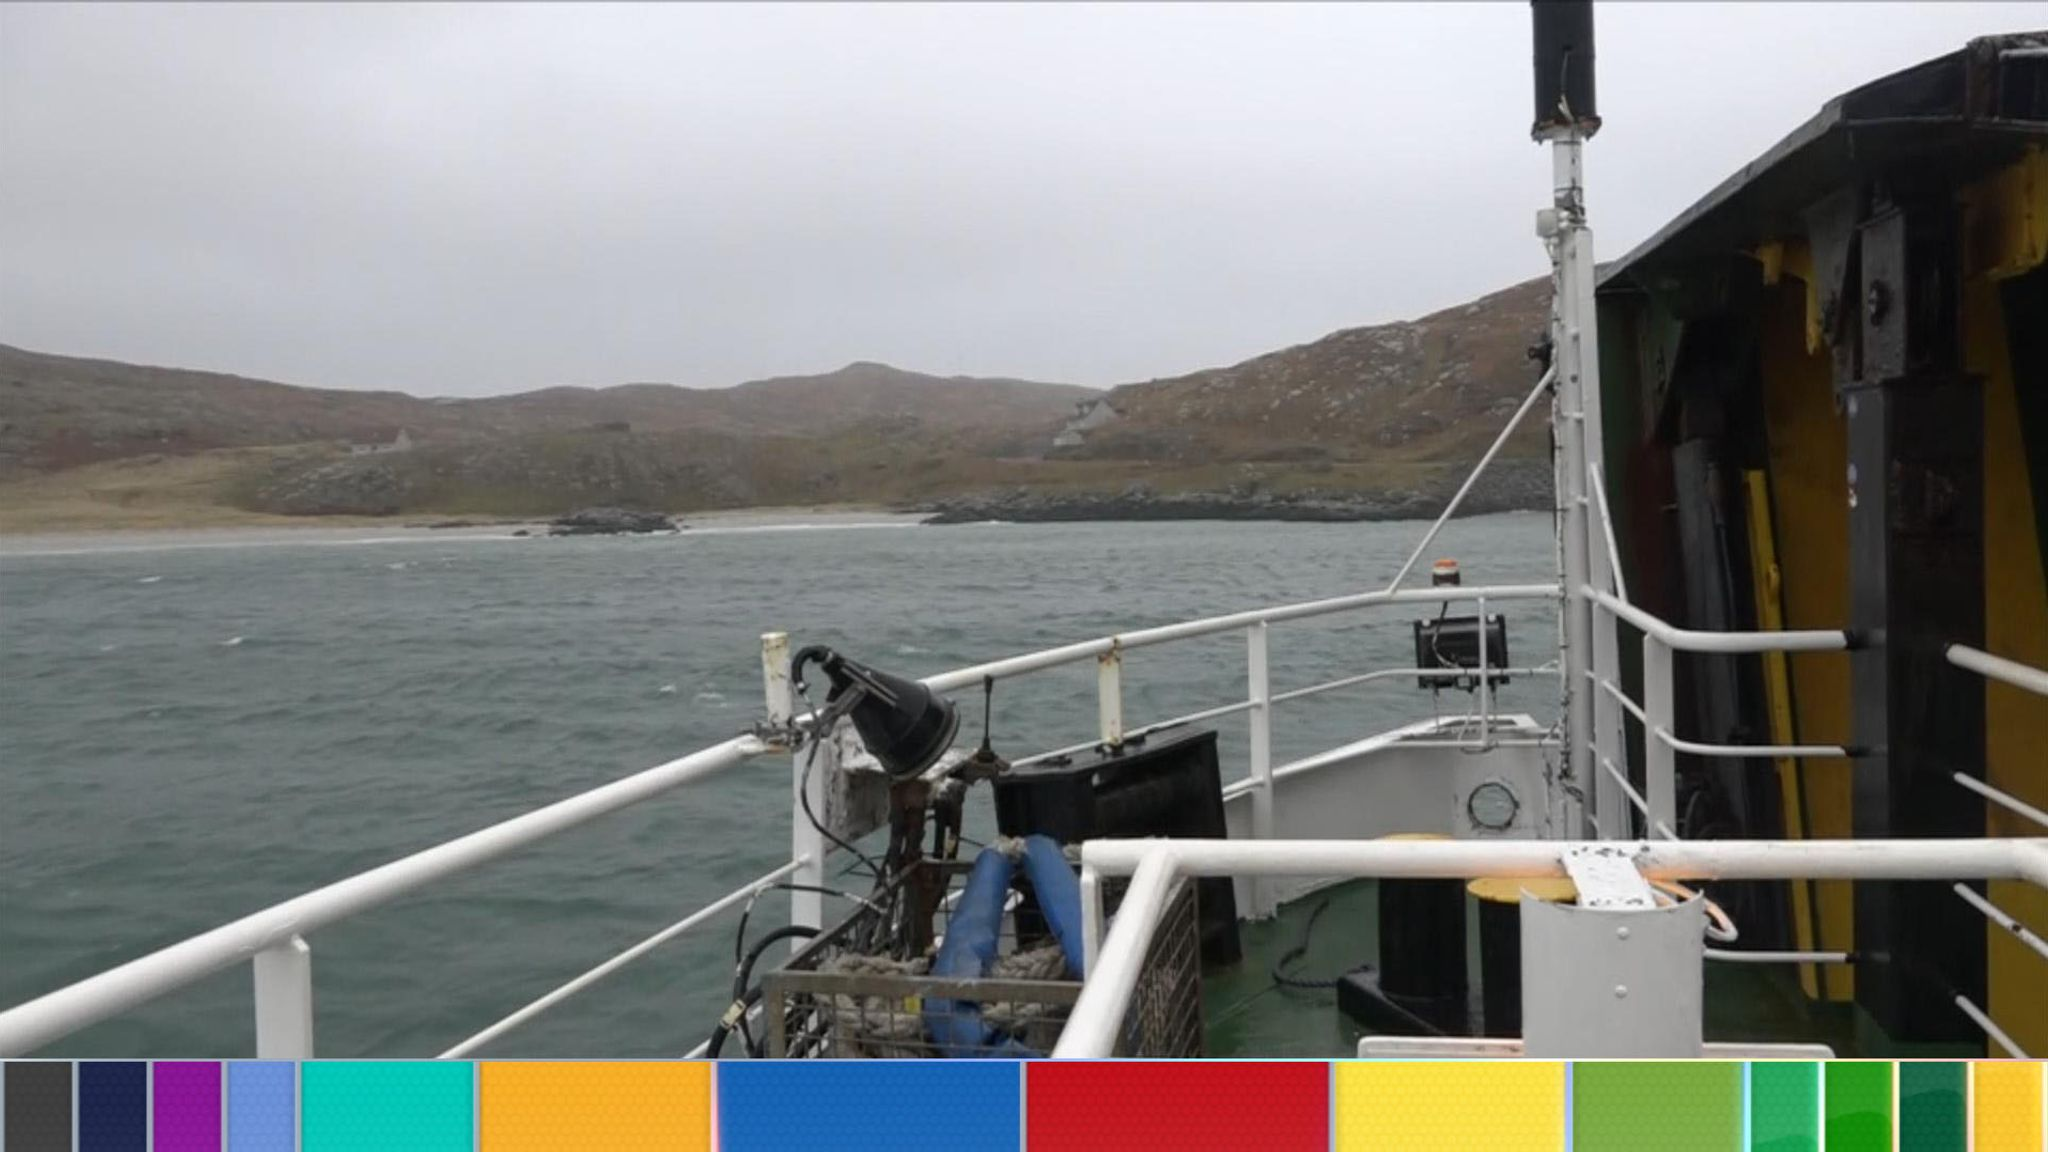 General election: Outer Hebrides 1,000 miles from Westminster but still close to big election issues